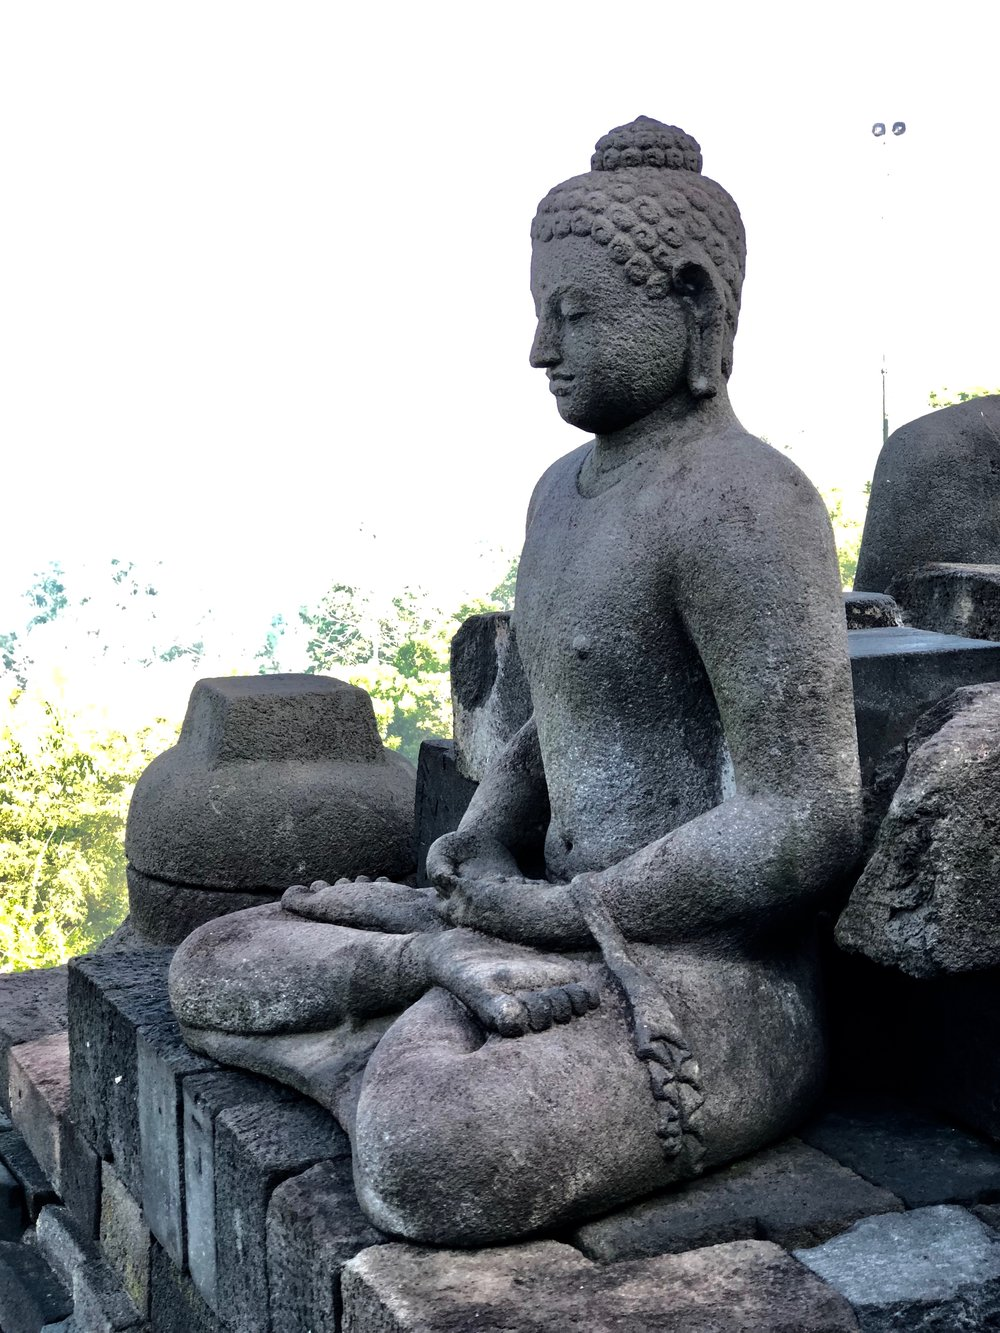 Be sure to check out the carvings as you explore the multi-story Borobudur Temple in Java, Indonesia